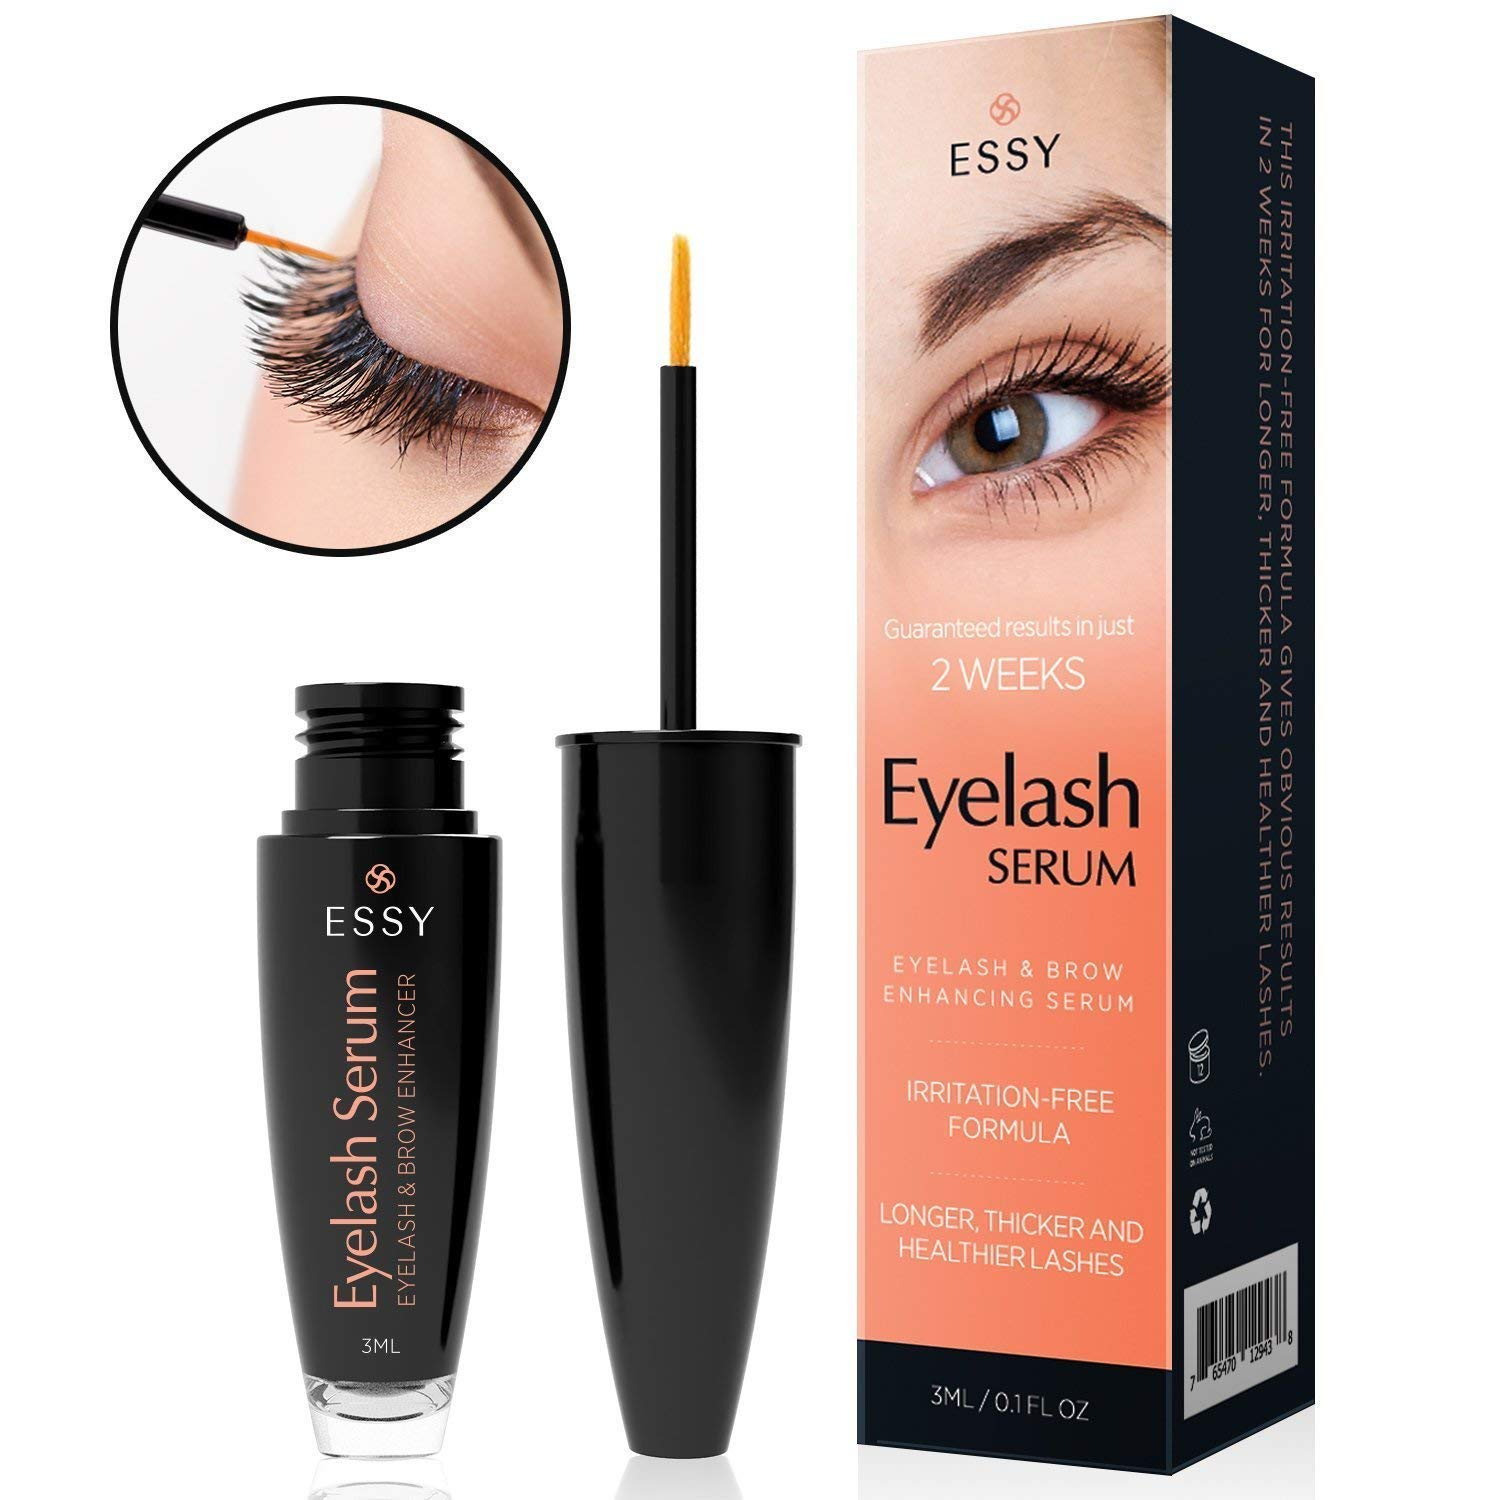 Essy Eyelash Growth Serum for Lash and Brow